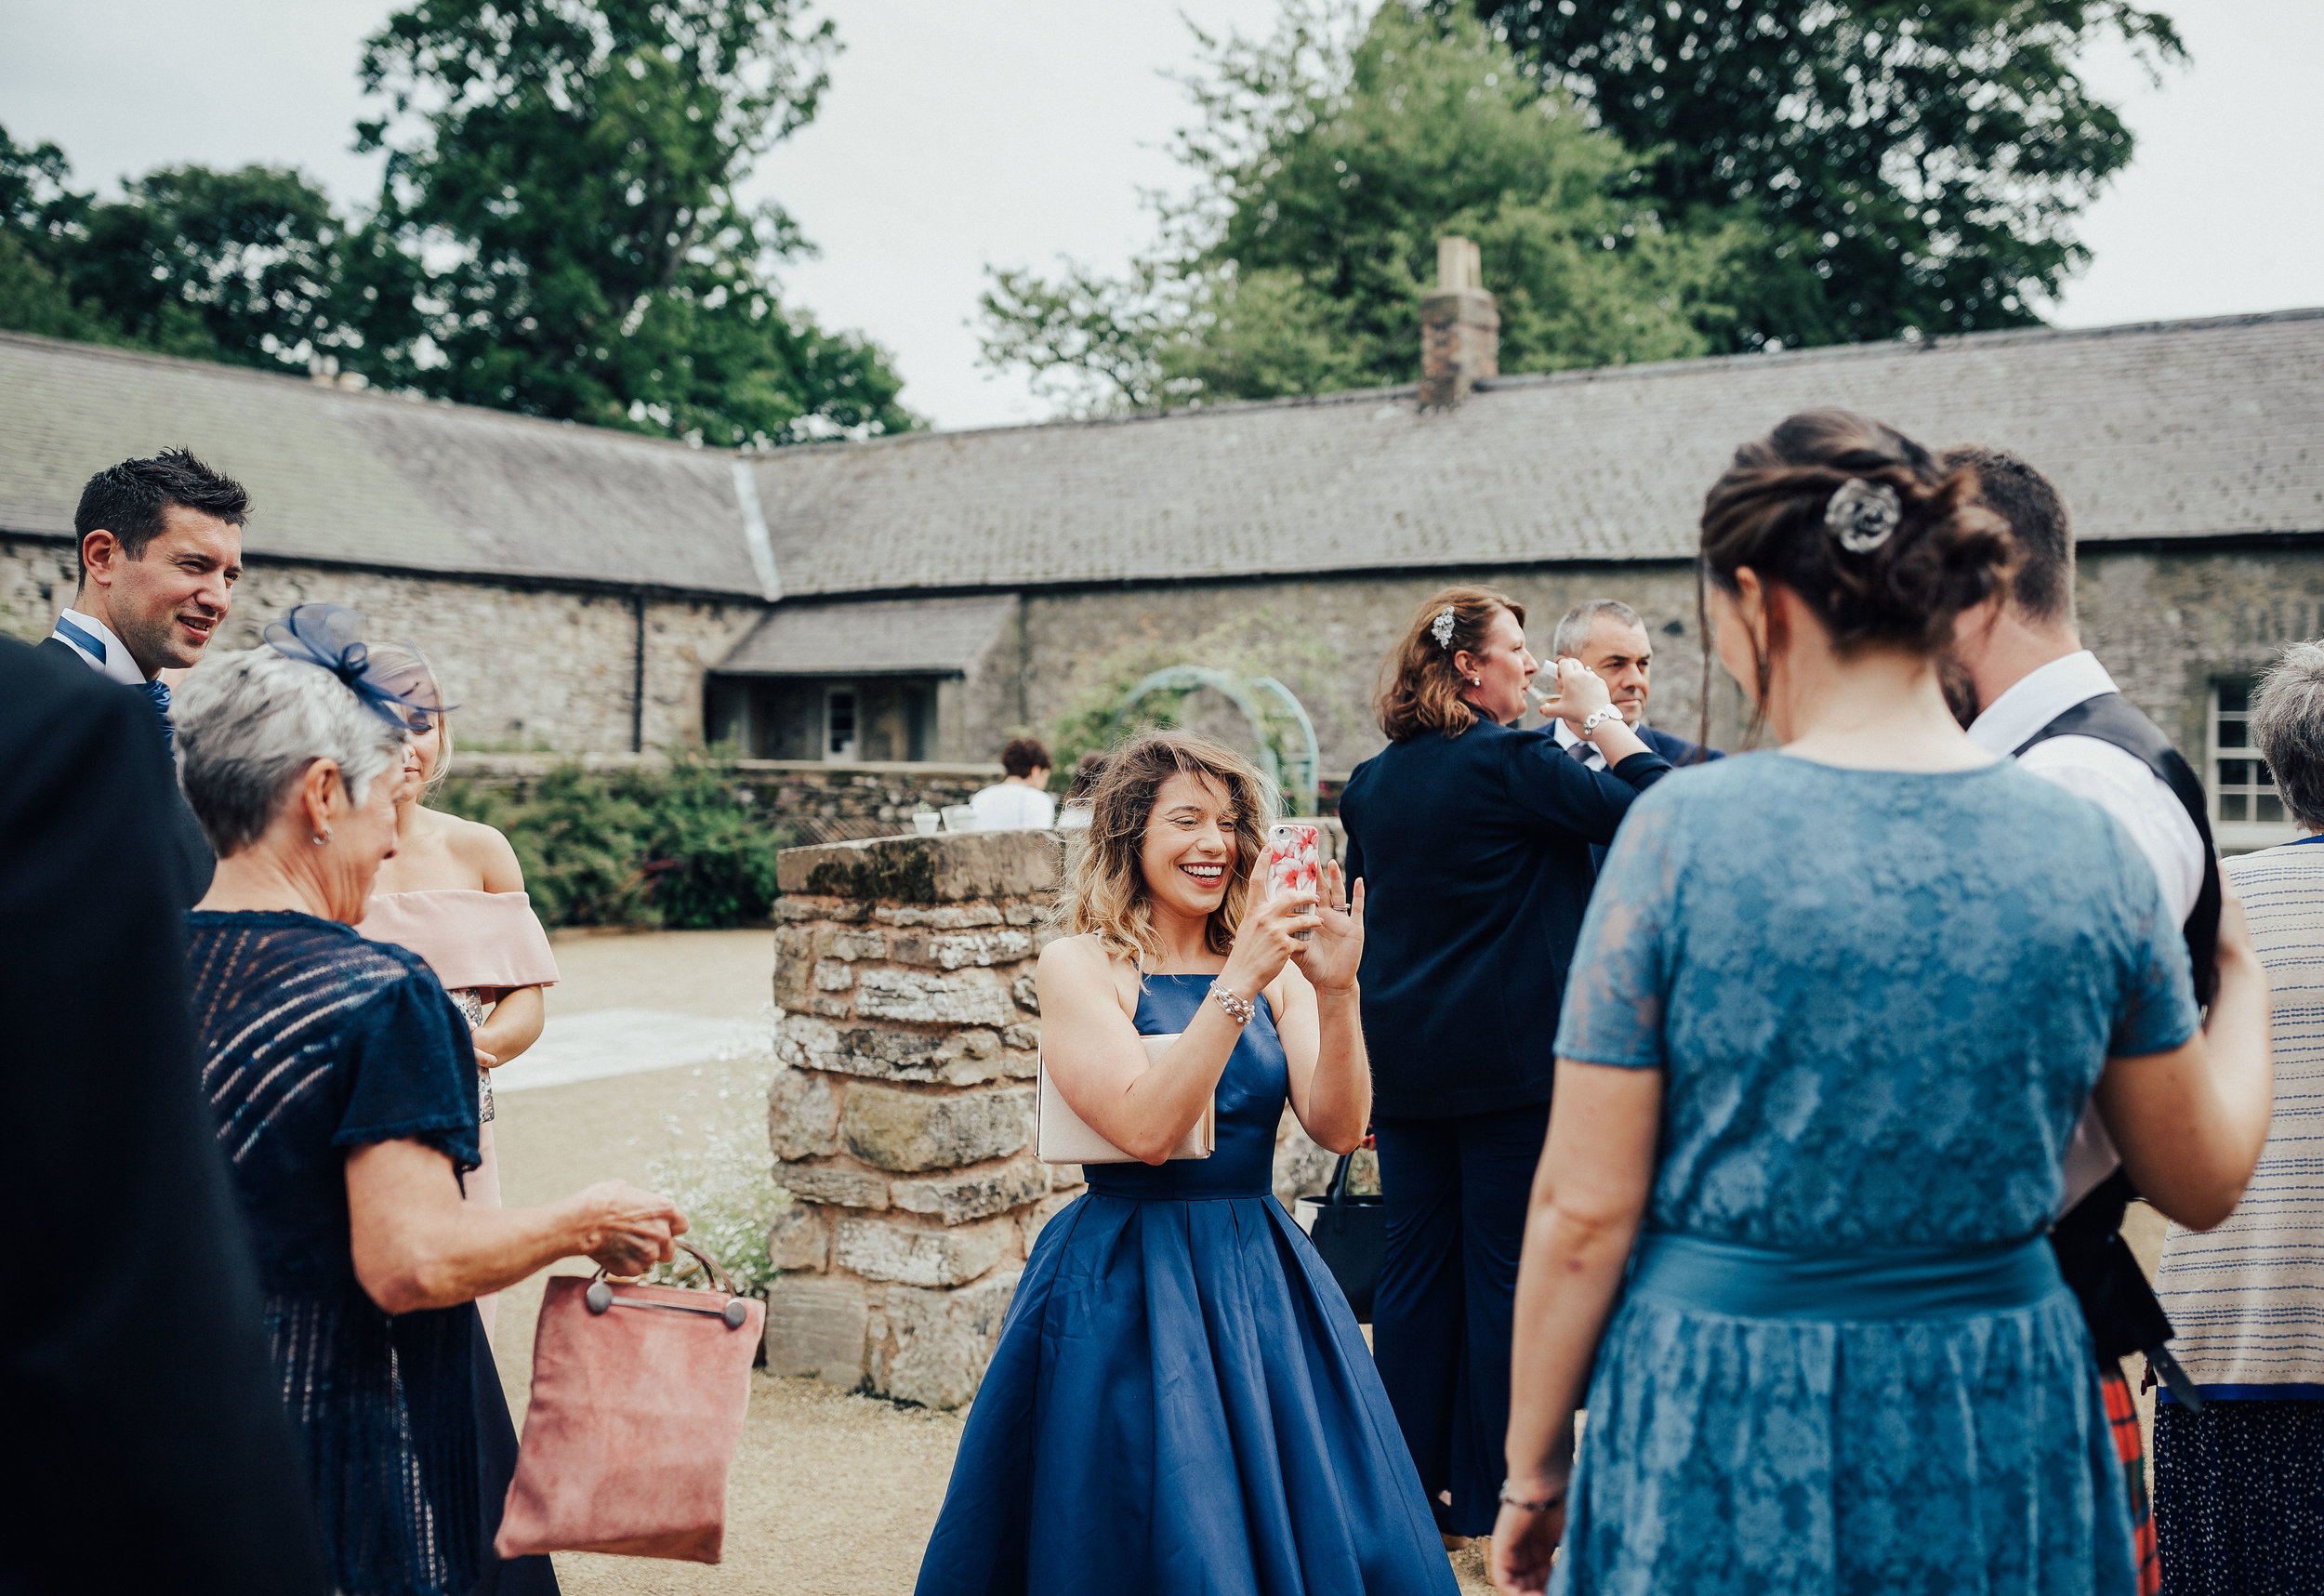 PJ_PHILLIPS_PHOTOGRAPHY_EDINBURGH_WEDDERBURN_BARNS_WEDDING_EDINBURGH_WEDDING_PHOTOGRAPHER_104.jpg